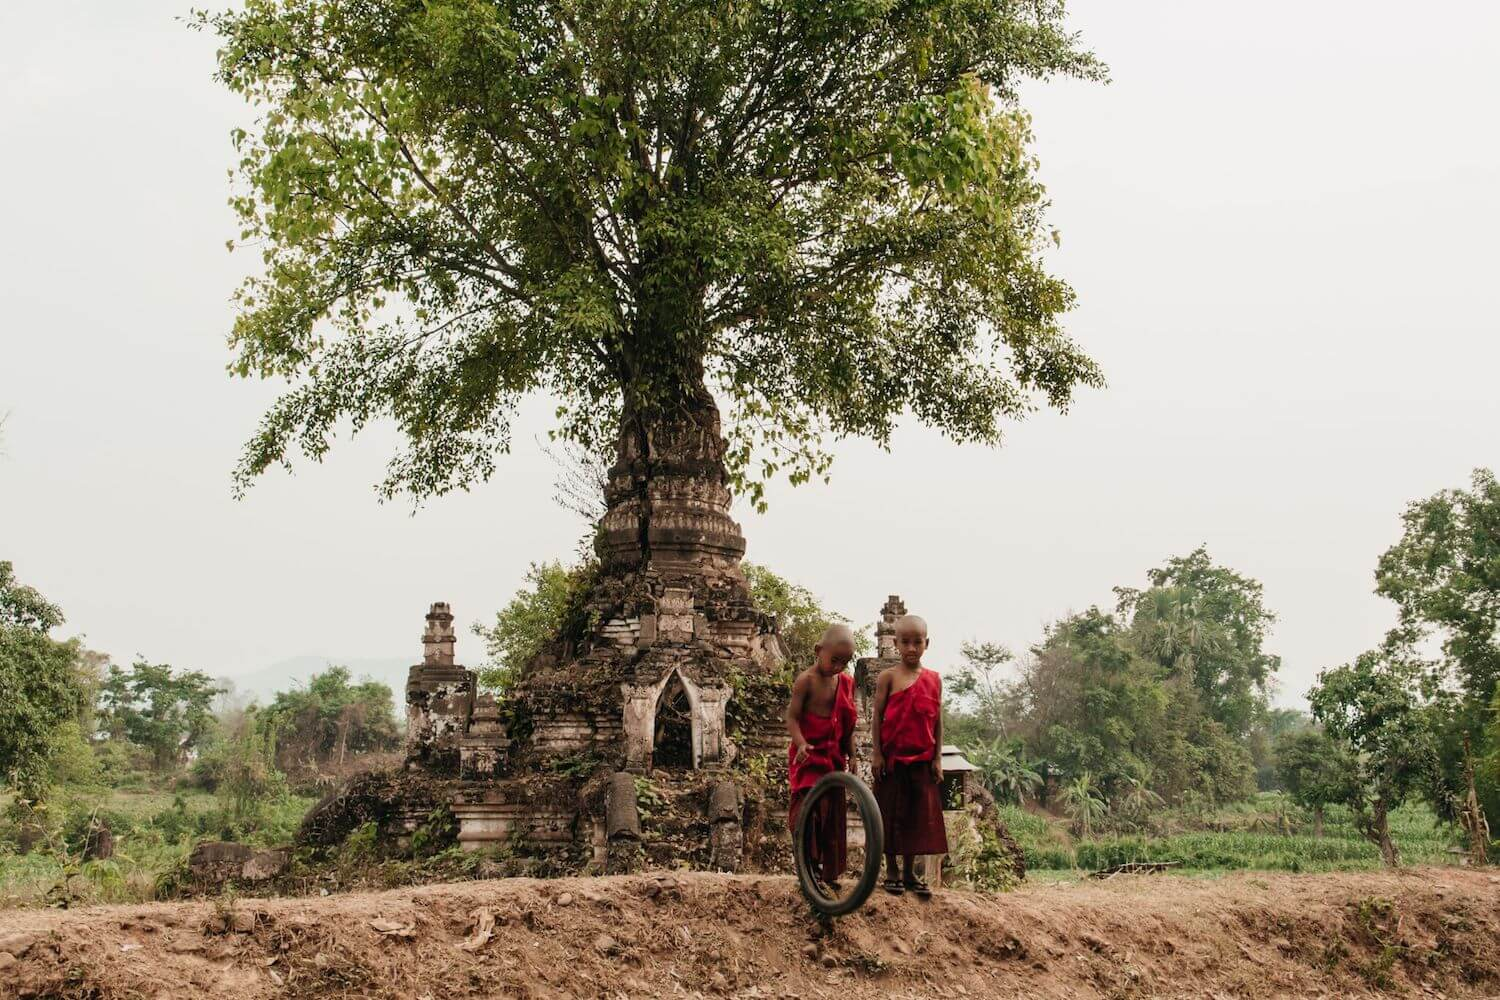 Best Myanmar Itinerary: Photo of two monk boys in red robes playing outside of a temple that has a tree sprouting from the top in Hsipaw, Myanmar. Photo taken by Ryan Brown of Lost Boy Memoirs, edited in Lightroom.